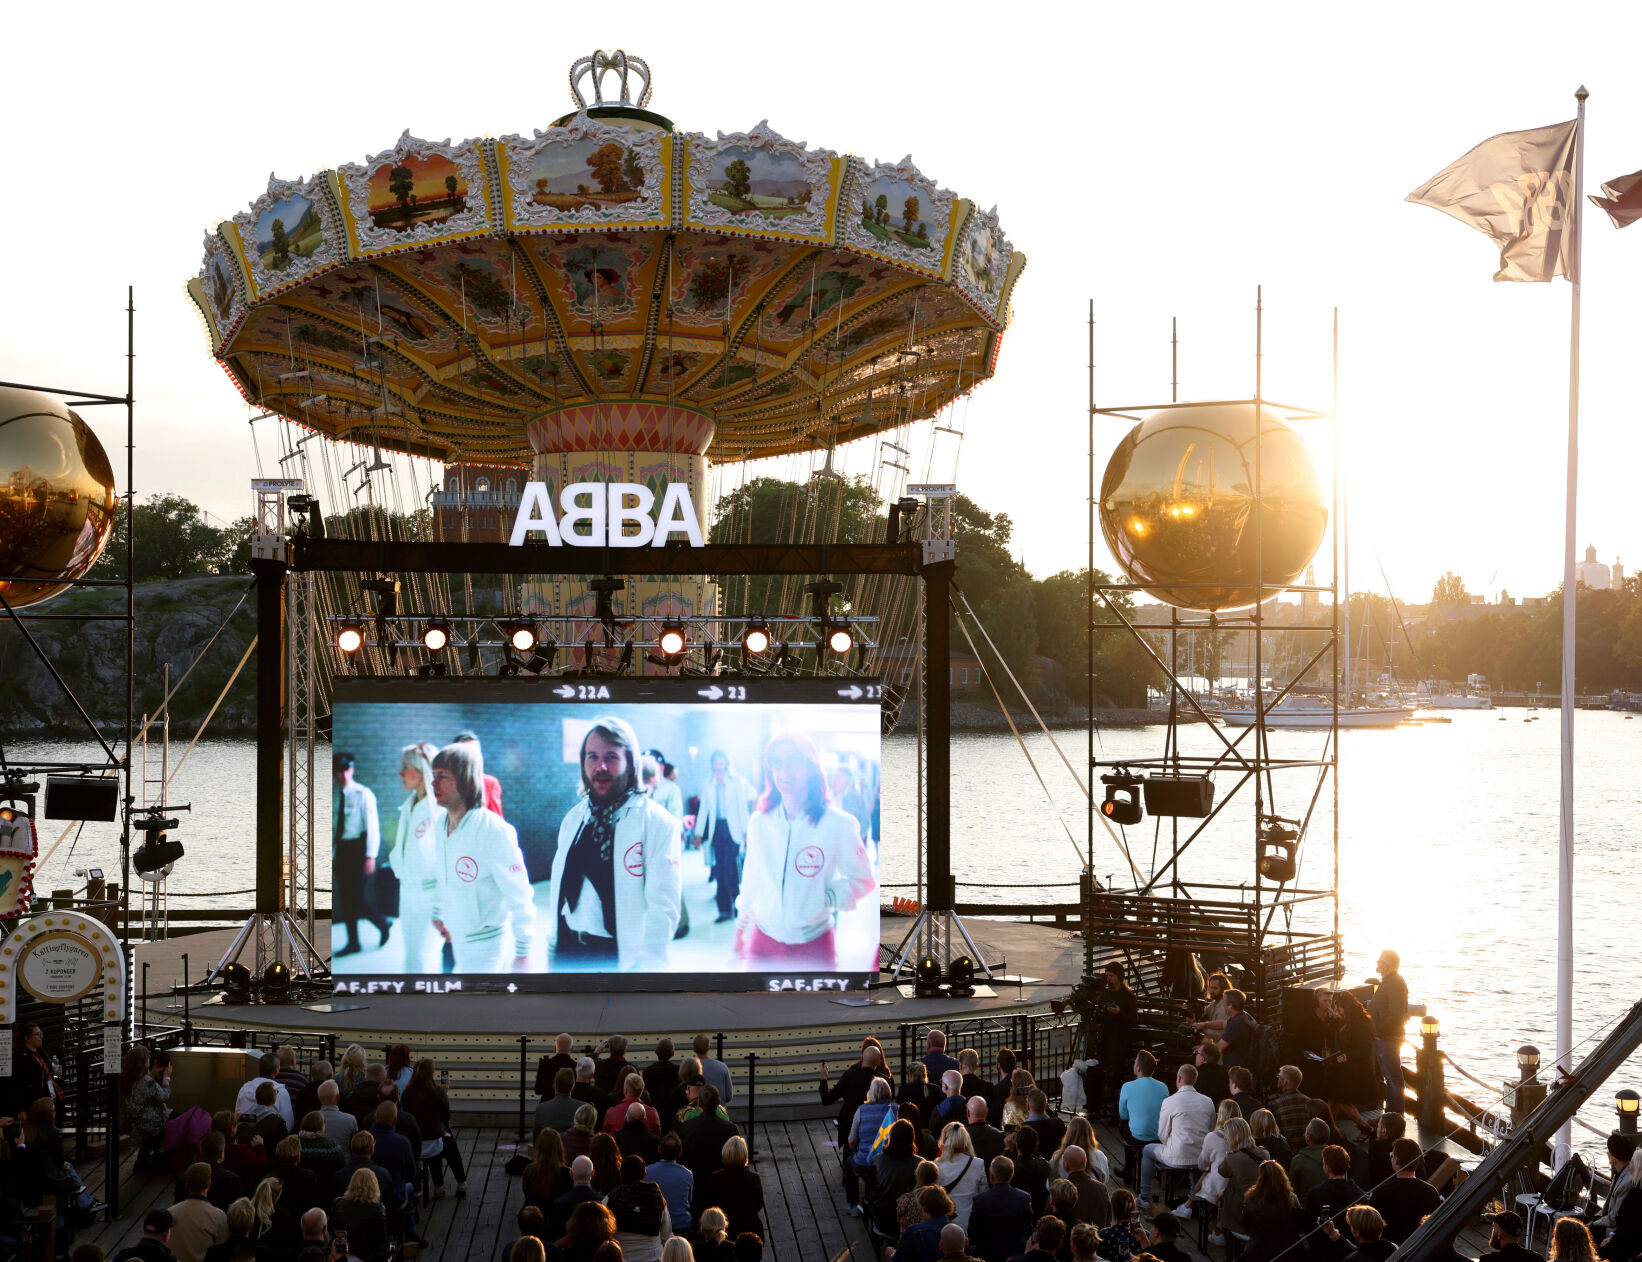 <p>People look at the screen at the ABBA Voyage event at Grona Lund in Stockholm, Sweden, on Thursday.</p>